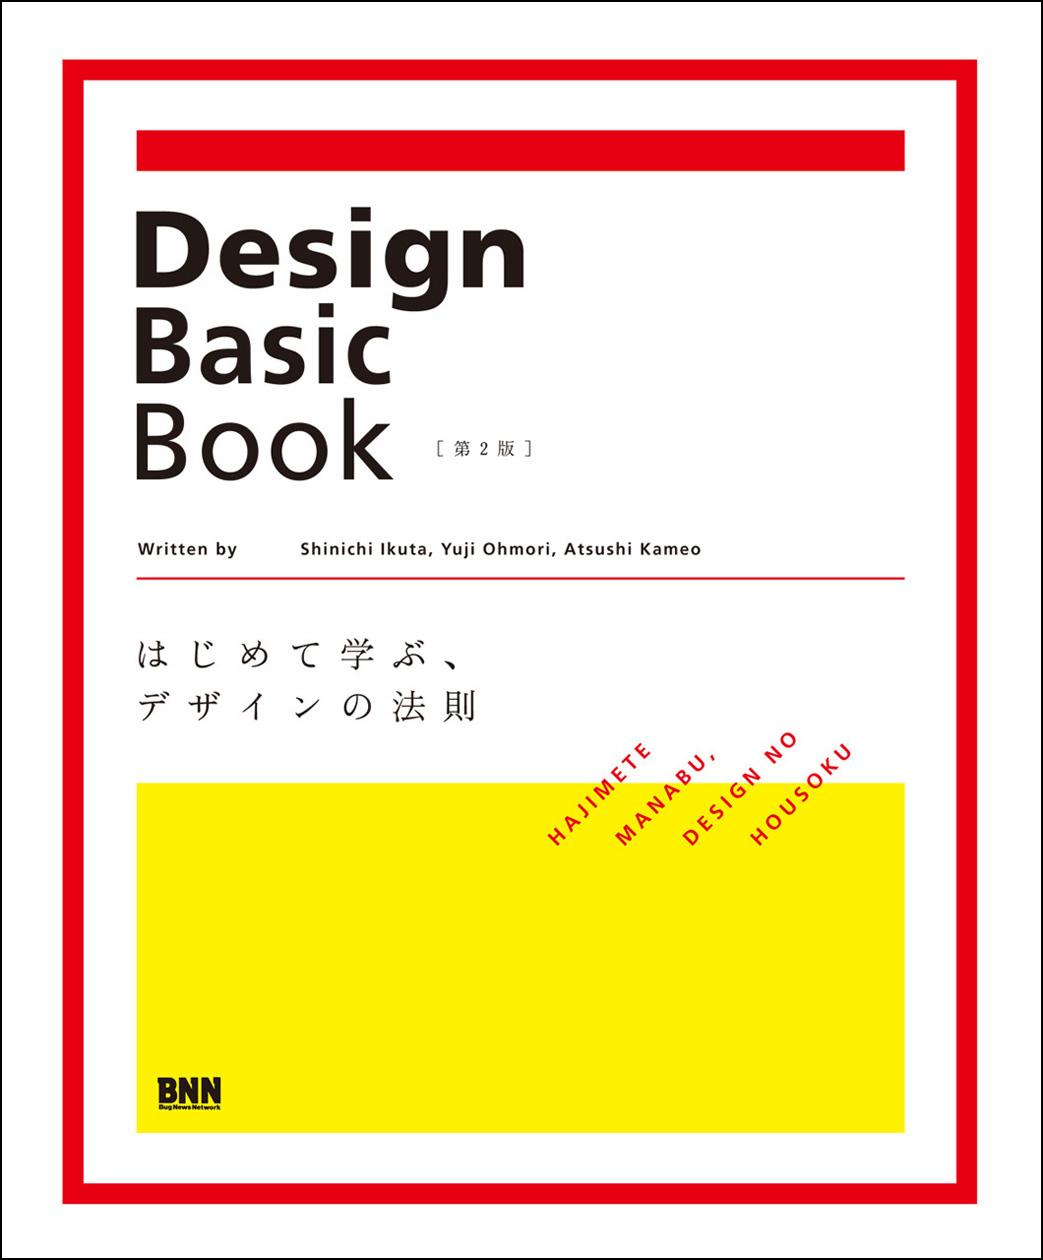 BNN international - design, culture & computer books